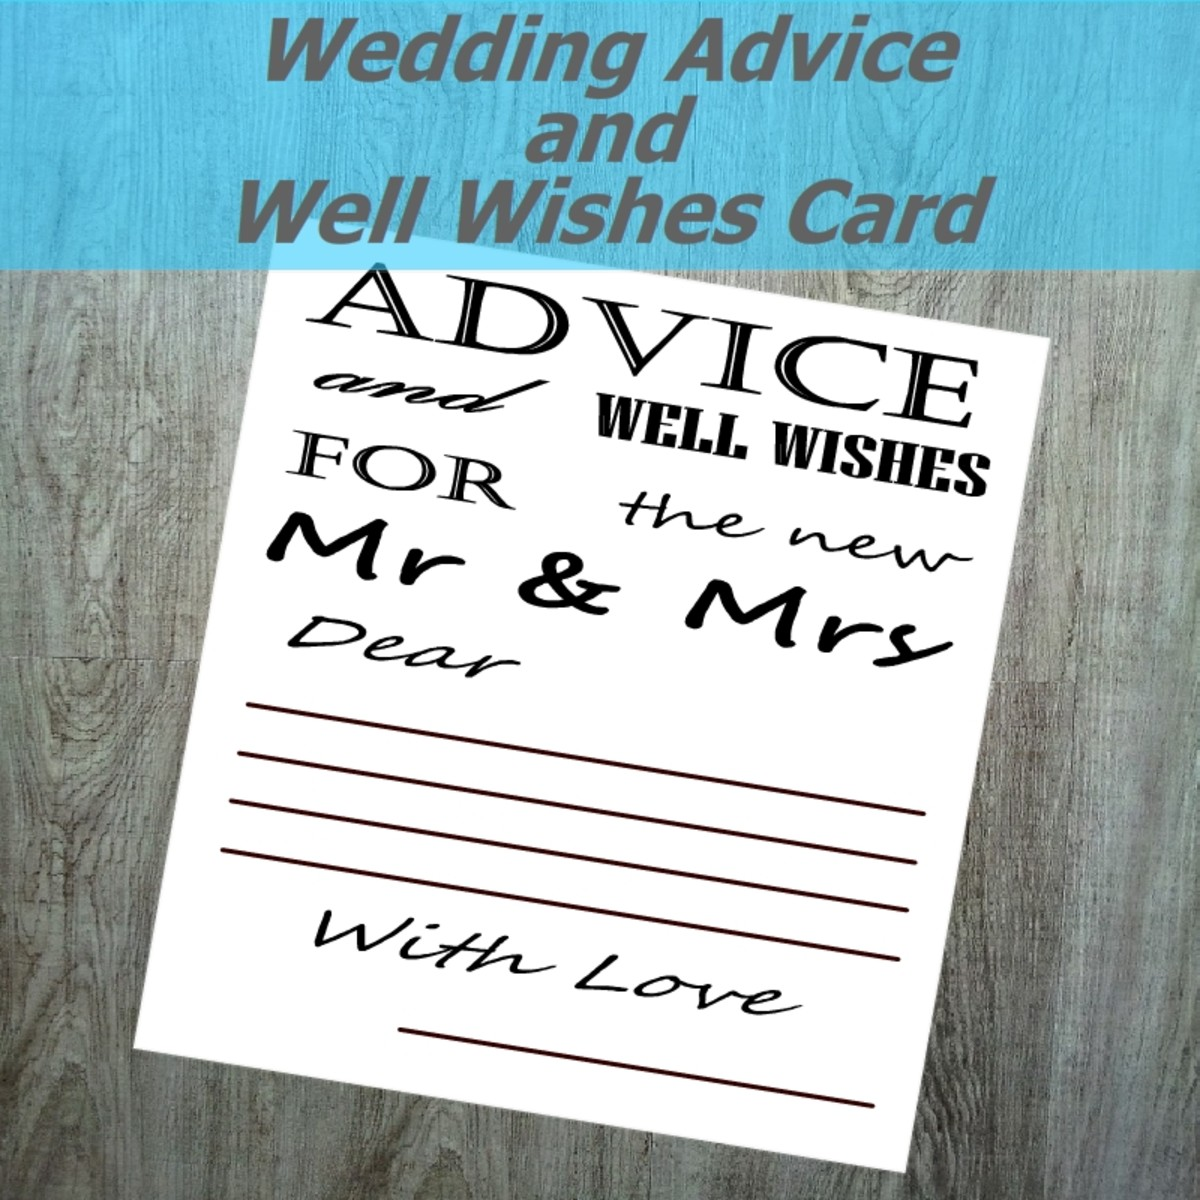 Wedding Advice and Well Wishes Card